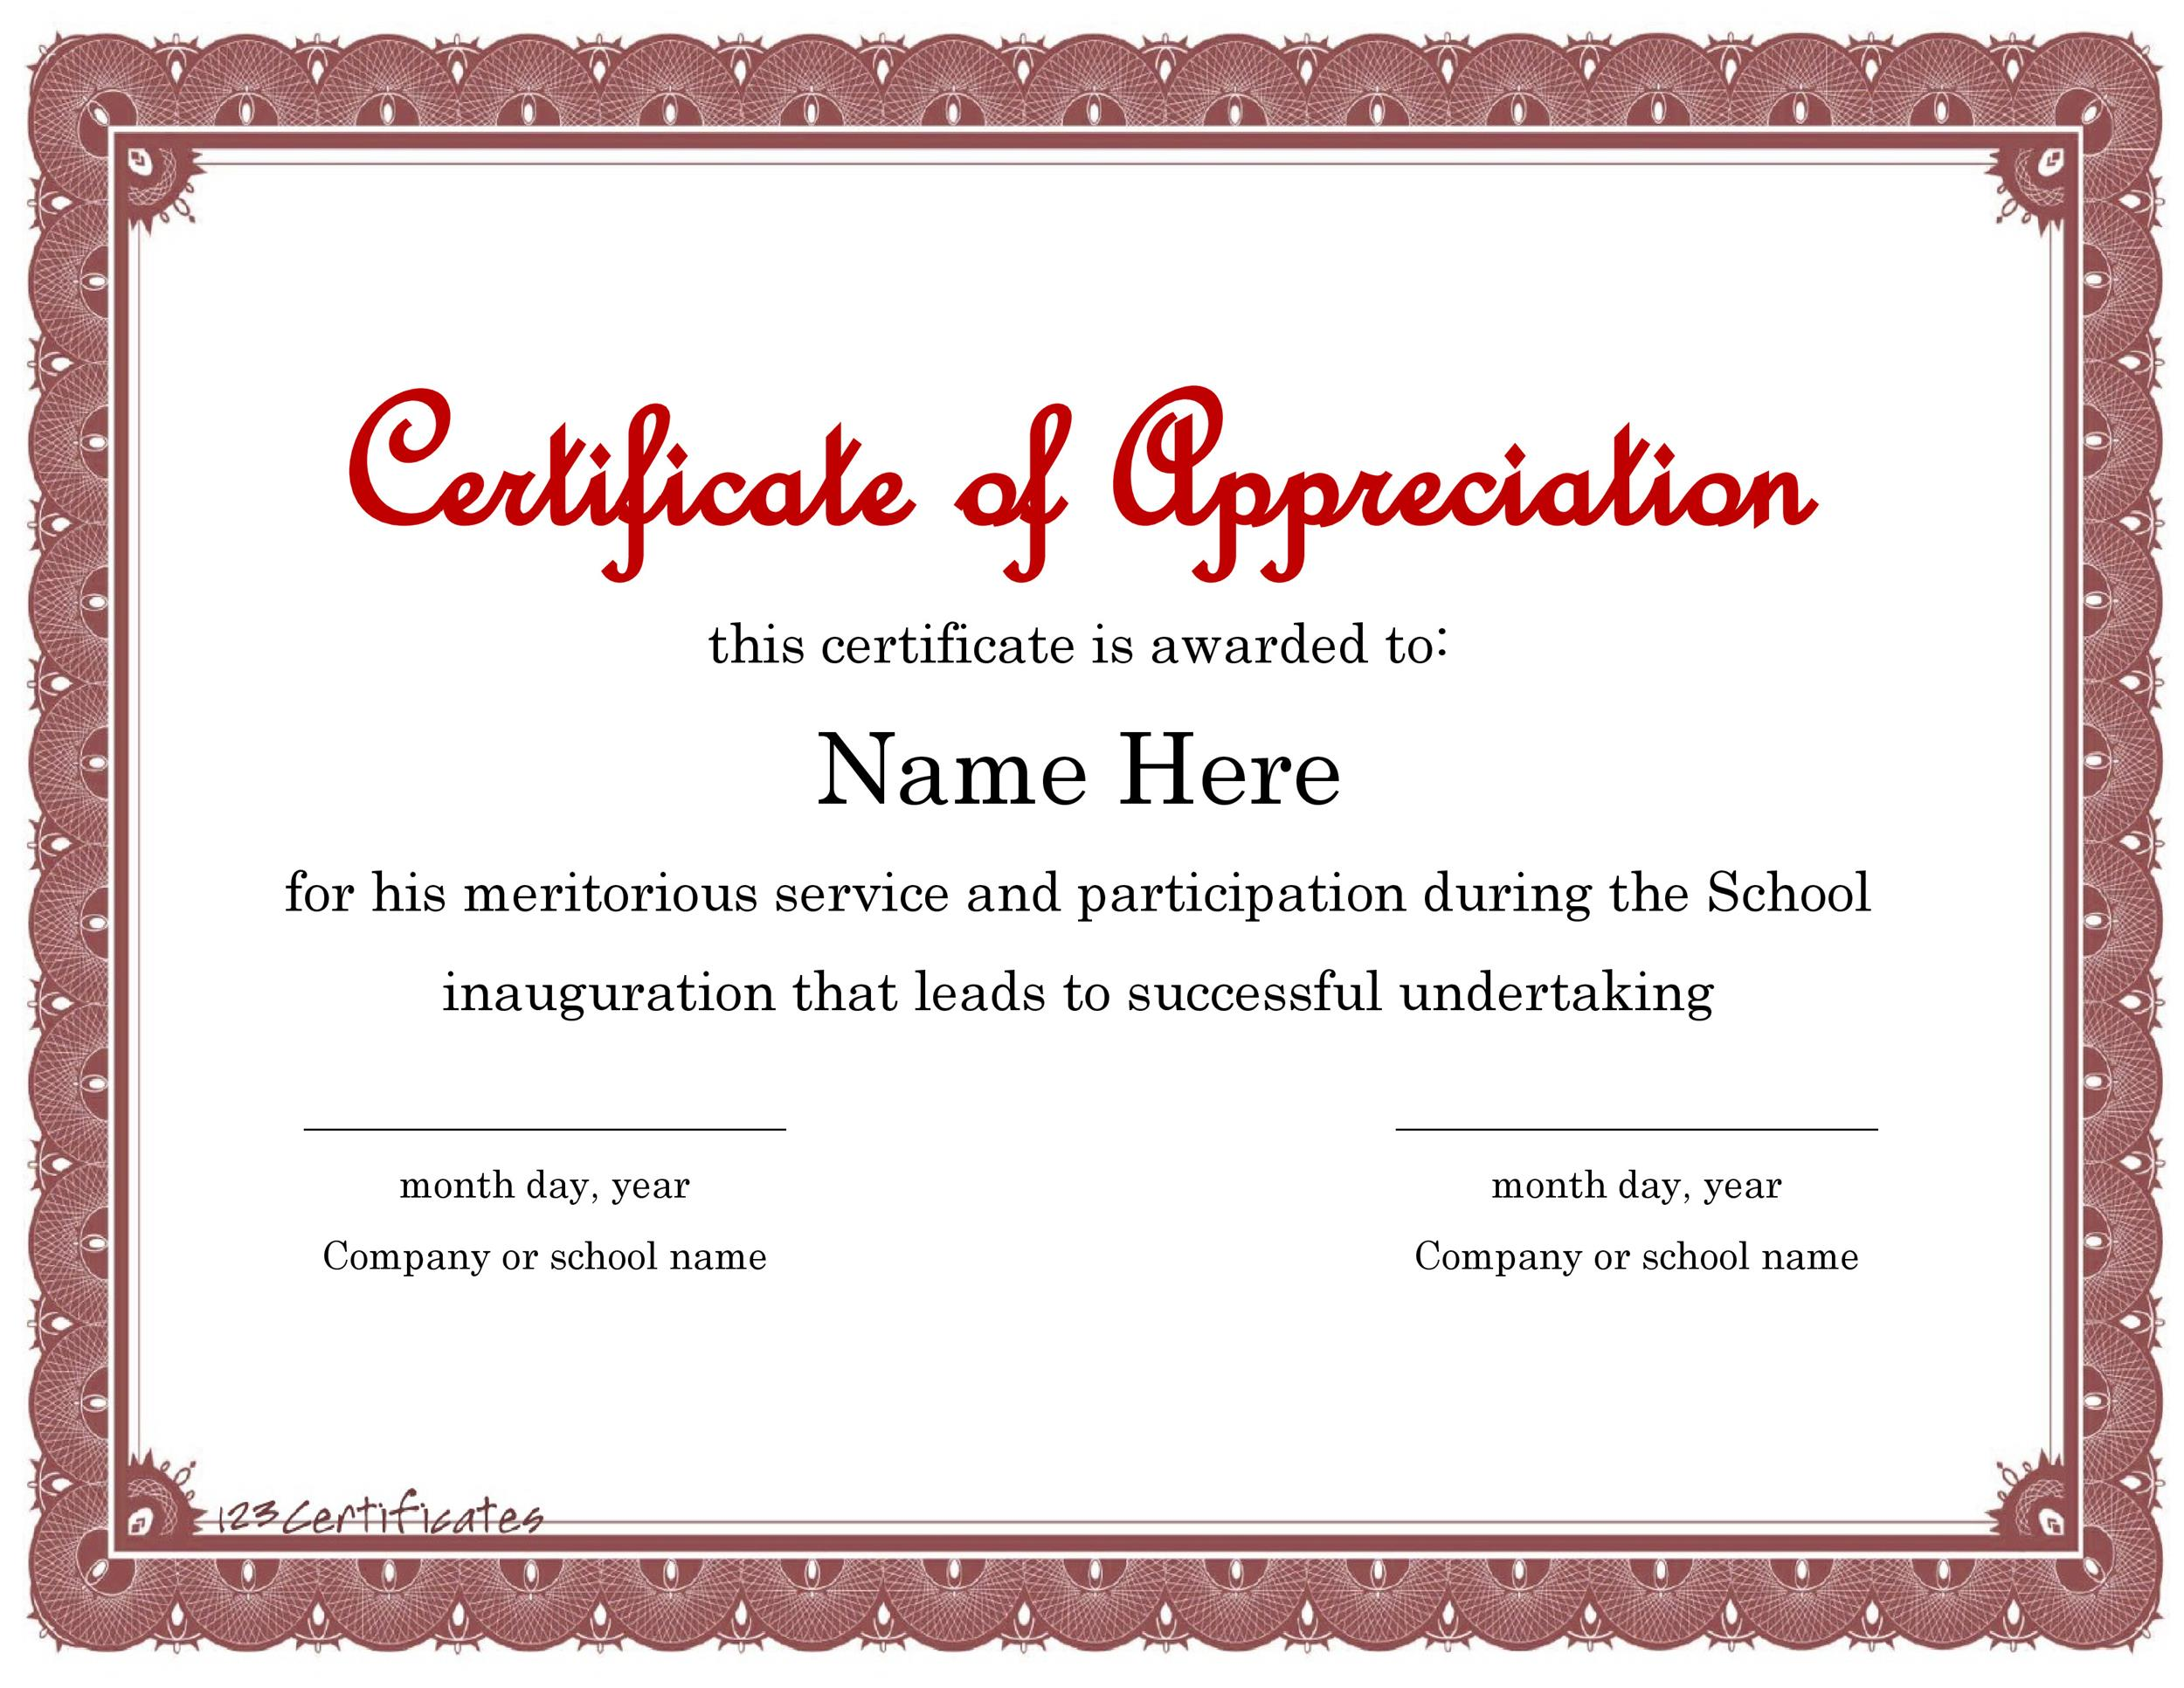 Nice Printable Certificate Of Appreciation 01 To Certificate Of Appreciation Template For Word